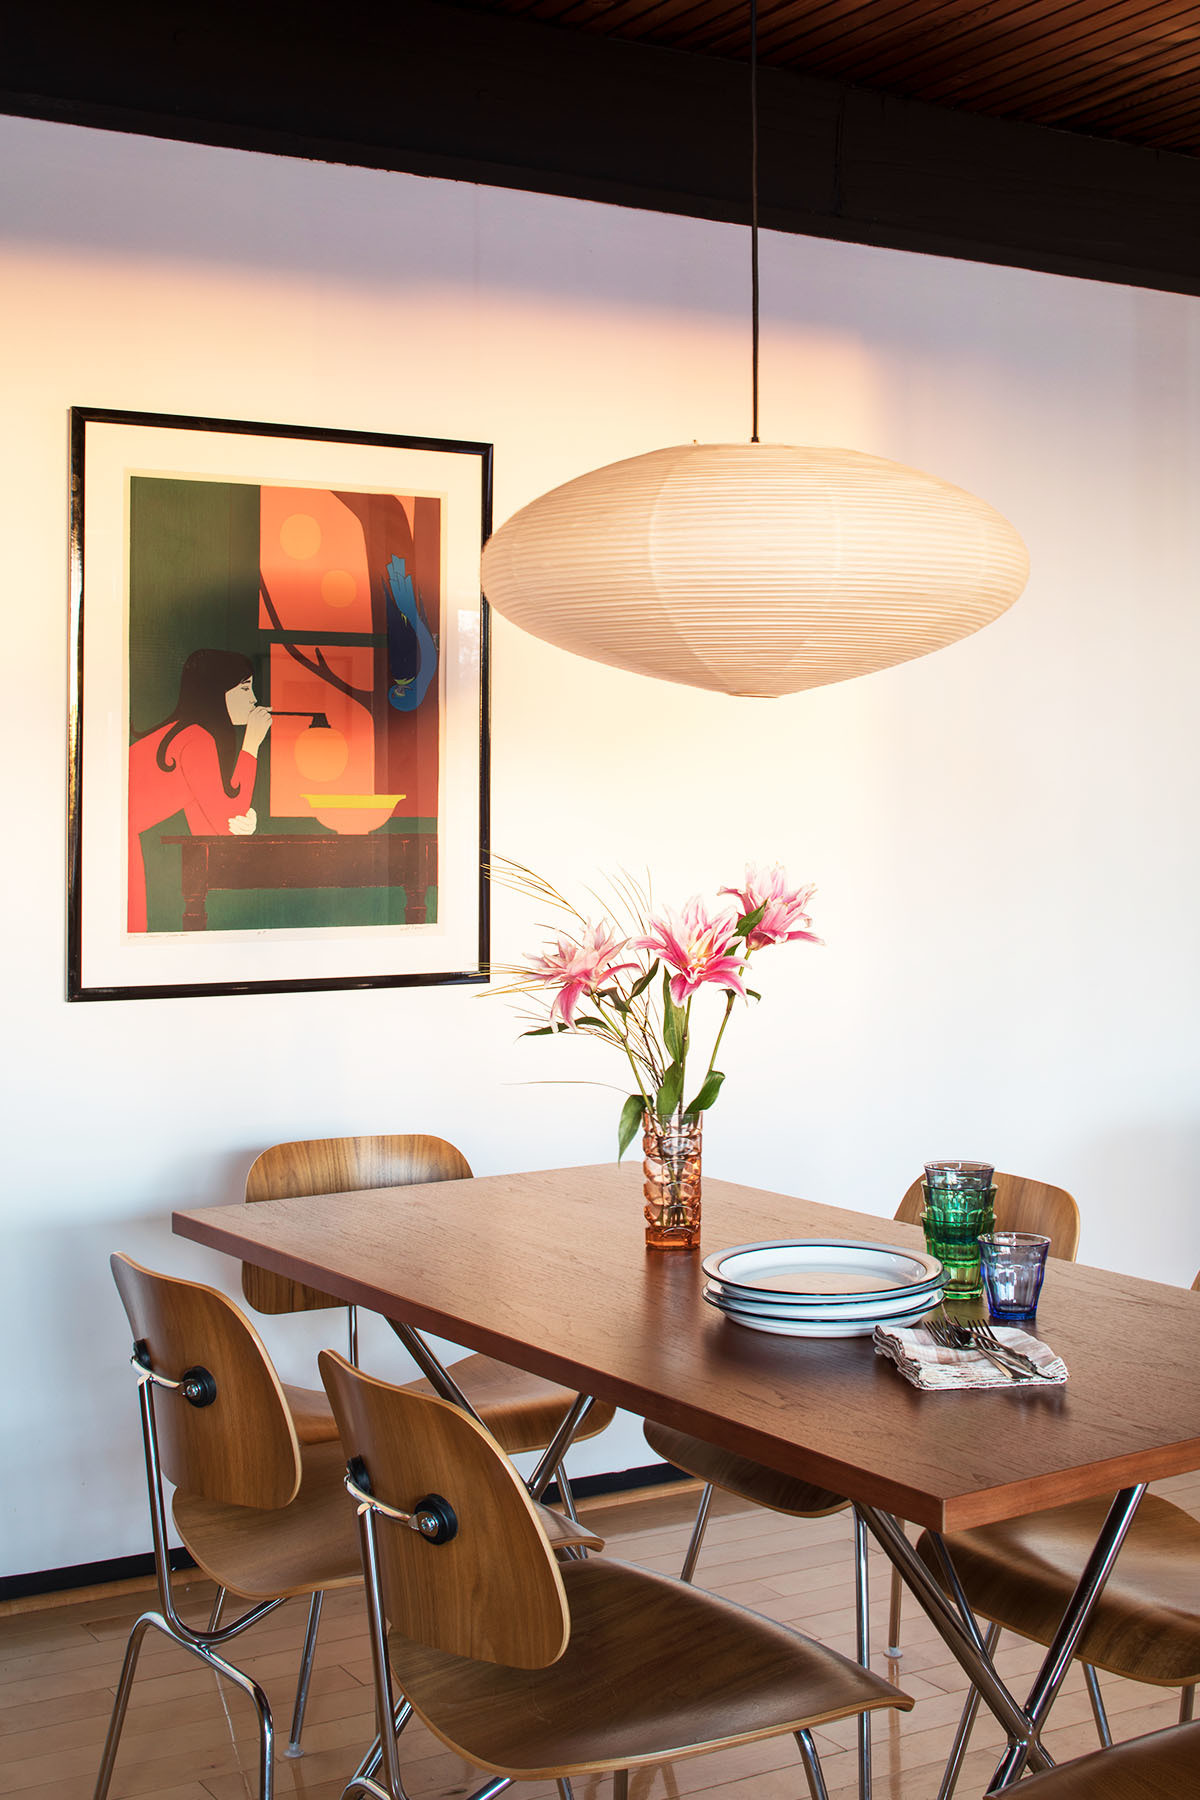 A classic Noguchi pendant light and George Nelson dining table complete the pared-back dining space, located adjacent to the kitchen. Eames for Herman Miller Dining Chairs | Rosalind Arcoroc Vintage Glassware | Will Barnet Artwork.